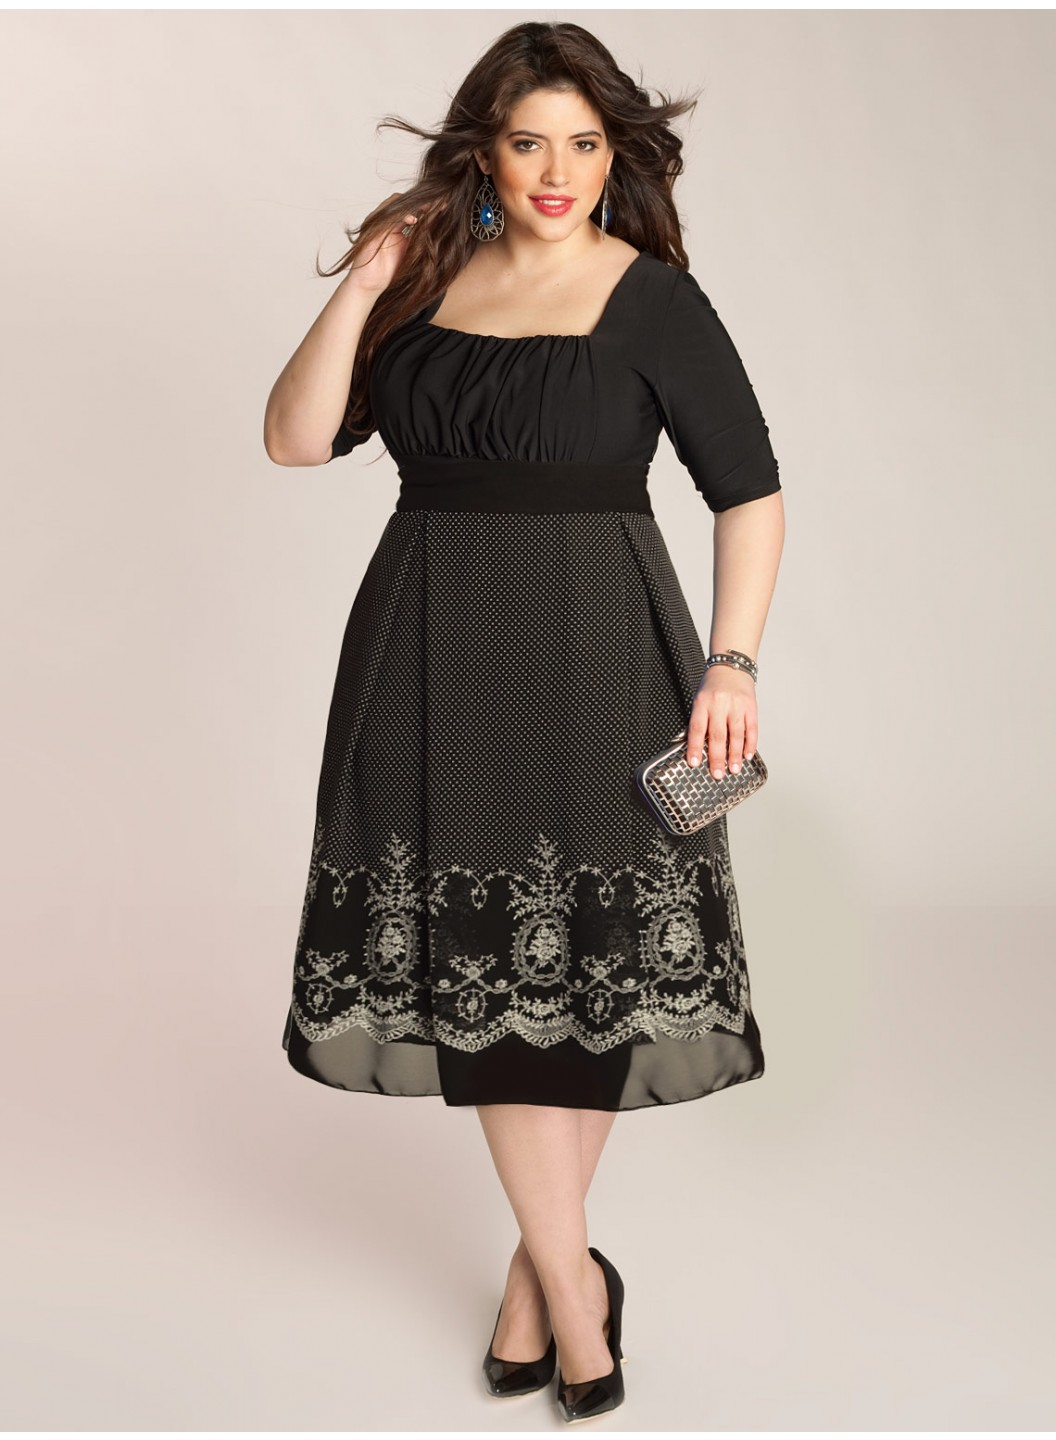 plus size fashion june 2015